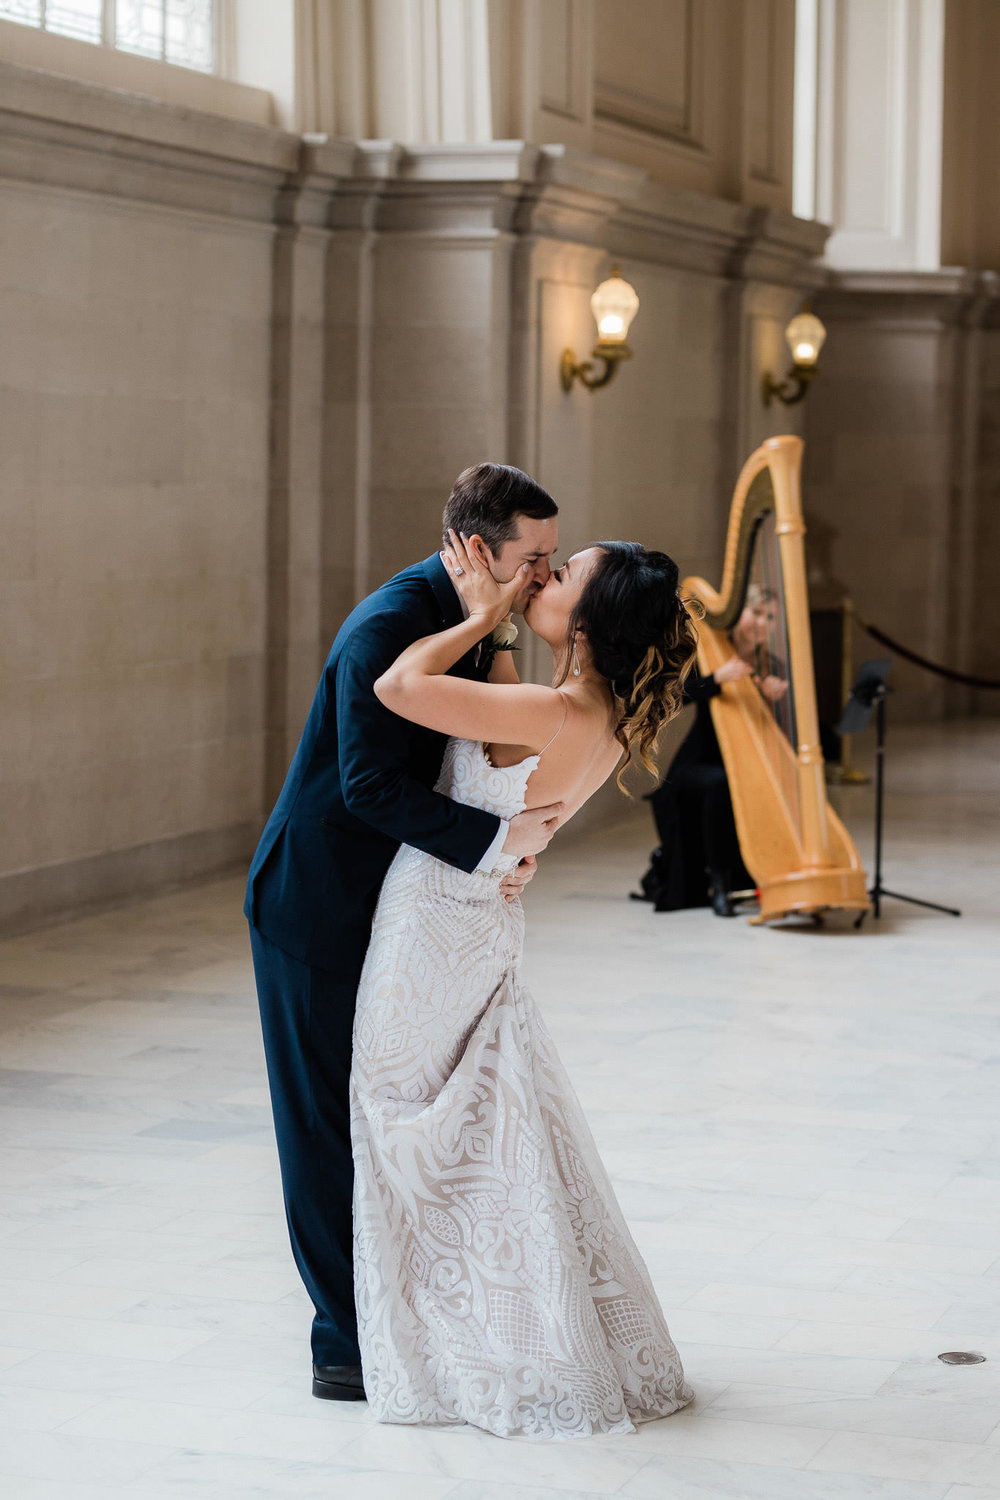 Bride and groom kiss after dancing to professional harp music during their San Francisco City Hall elopement